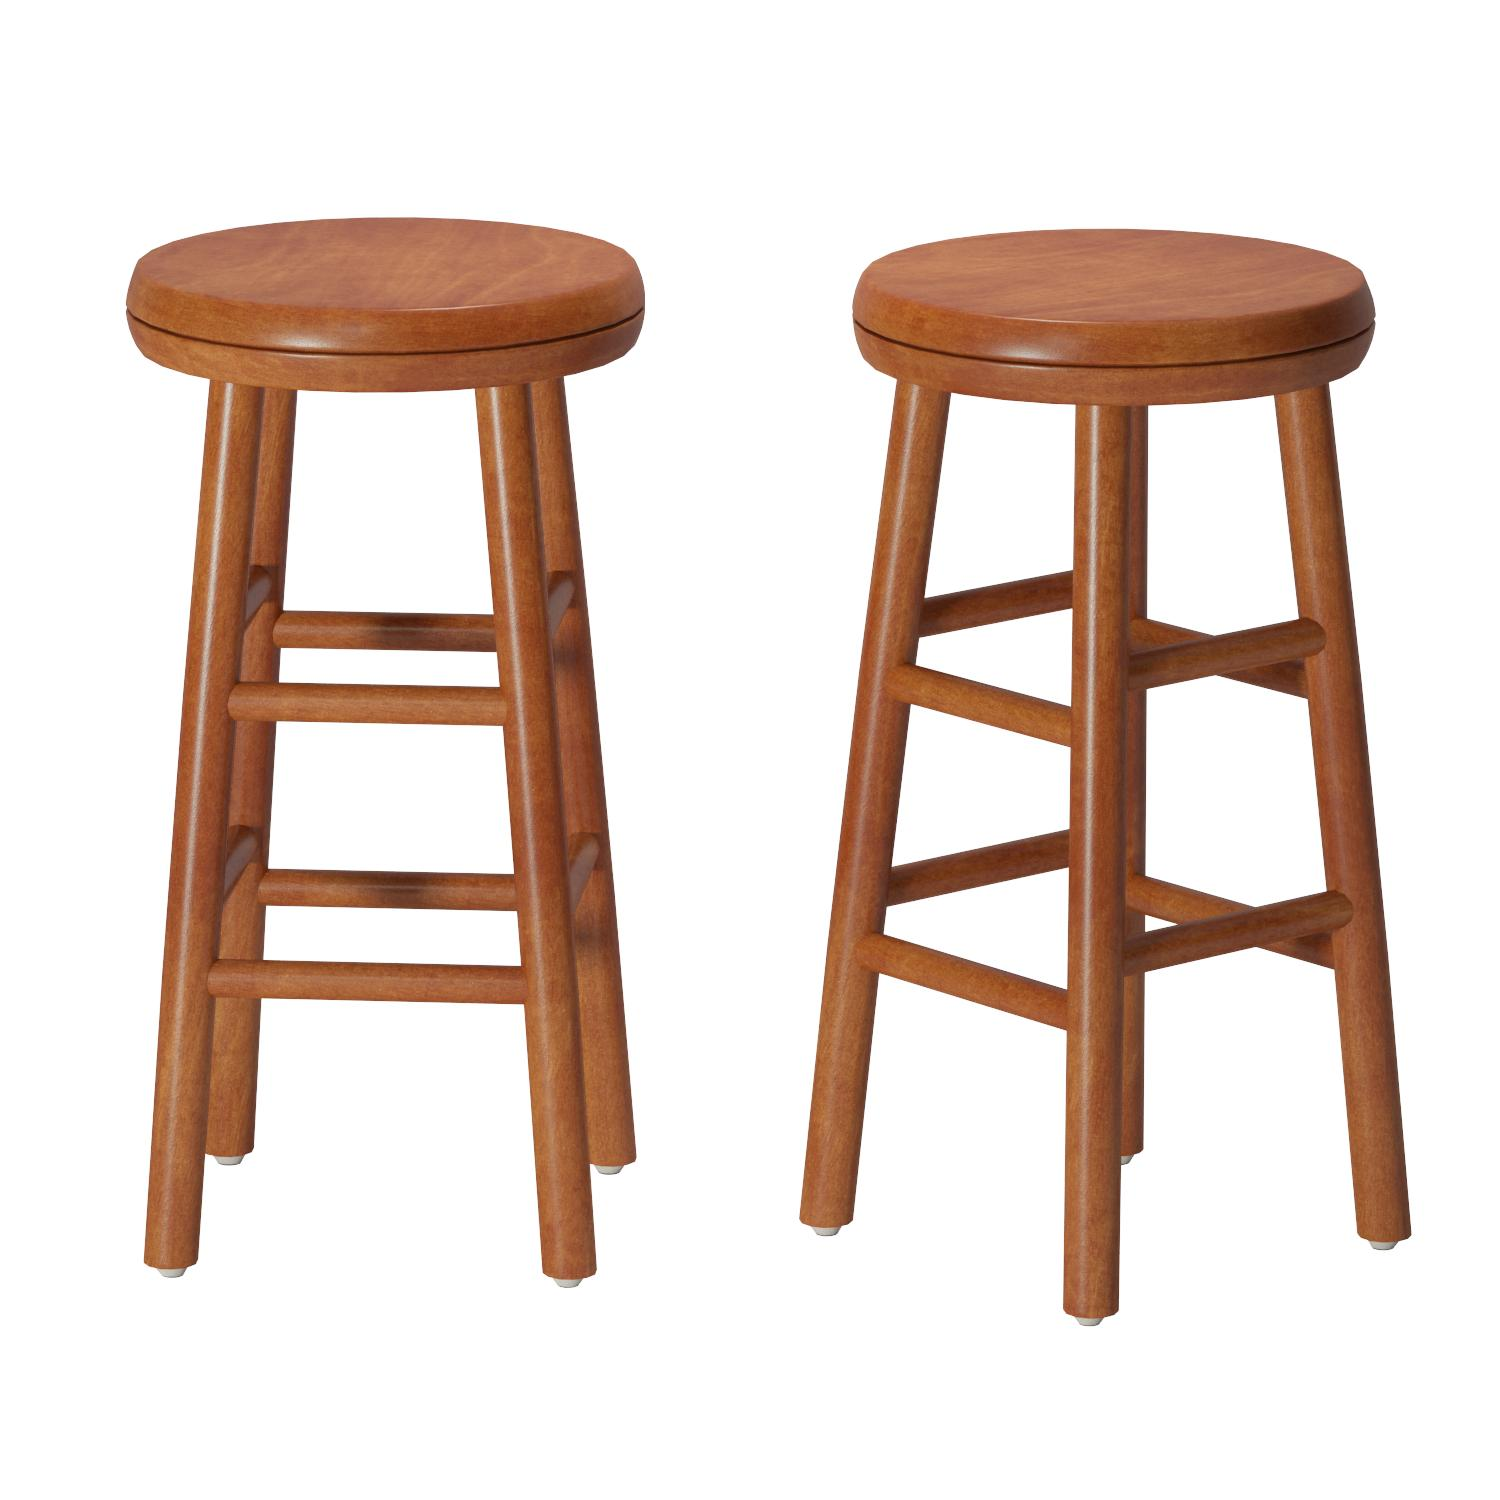 Lovely Bar Stools Natural Wood